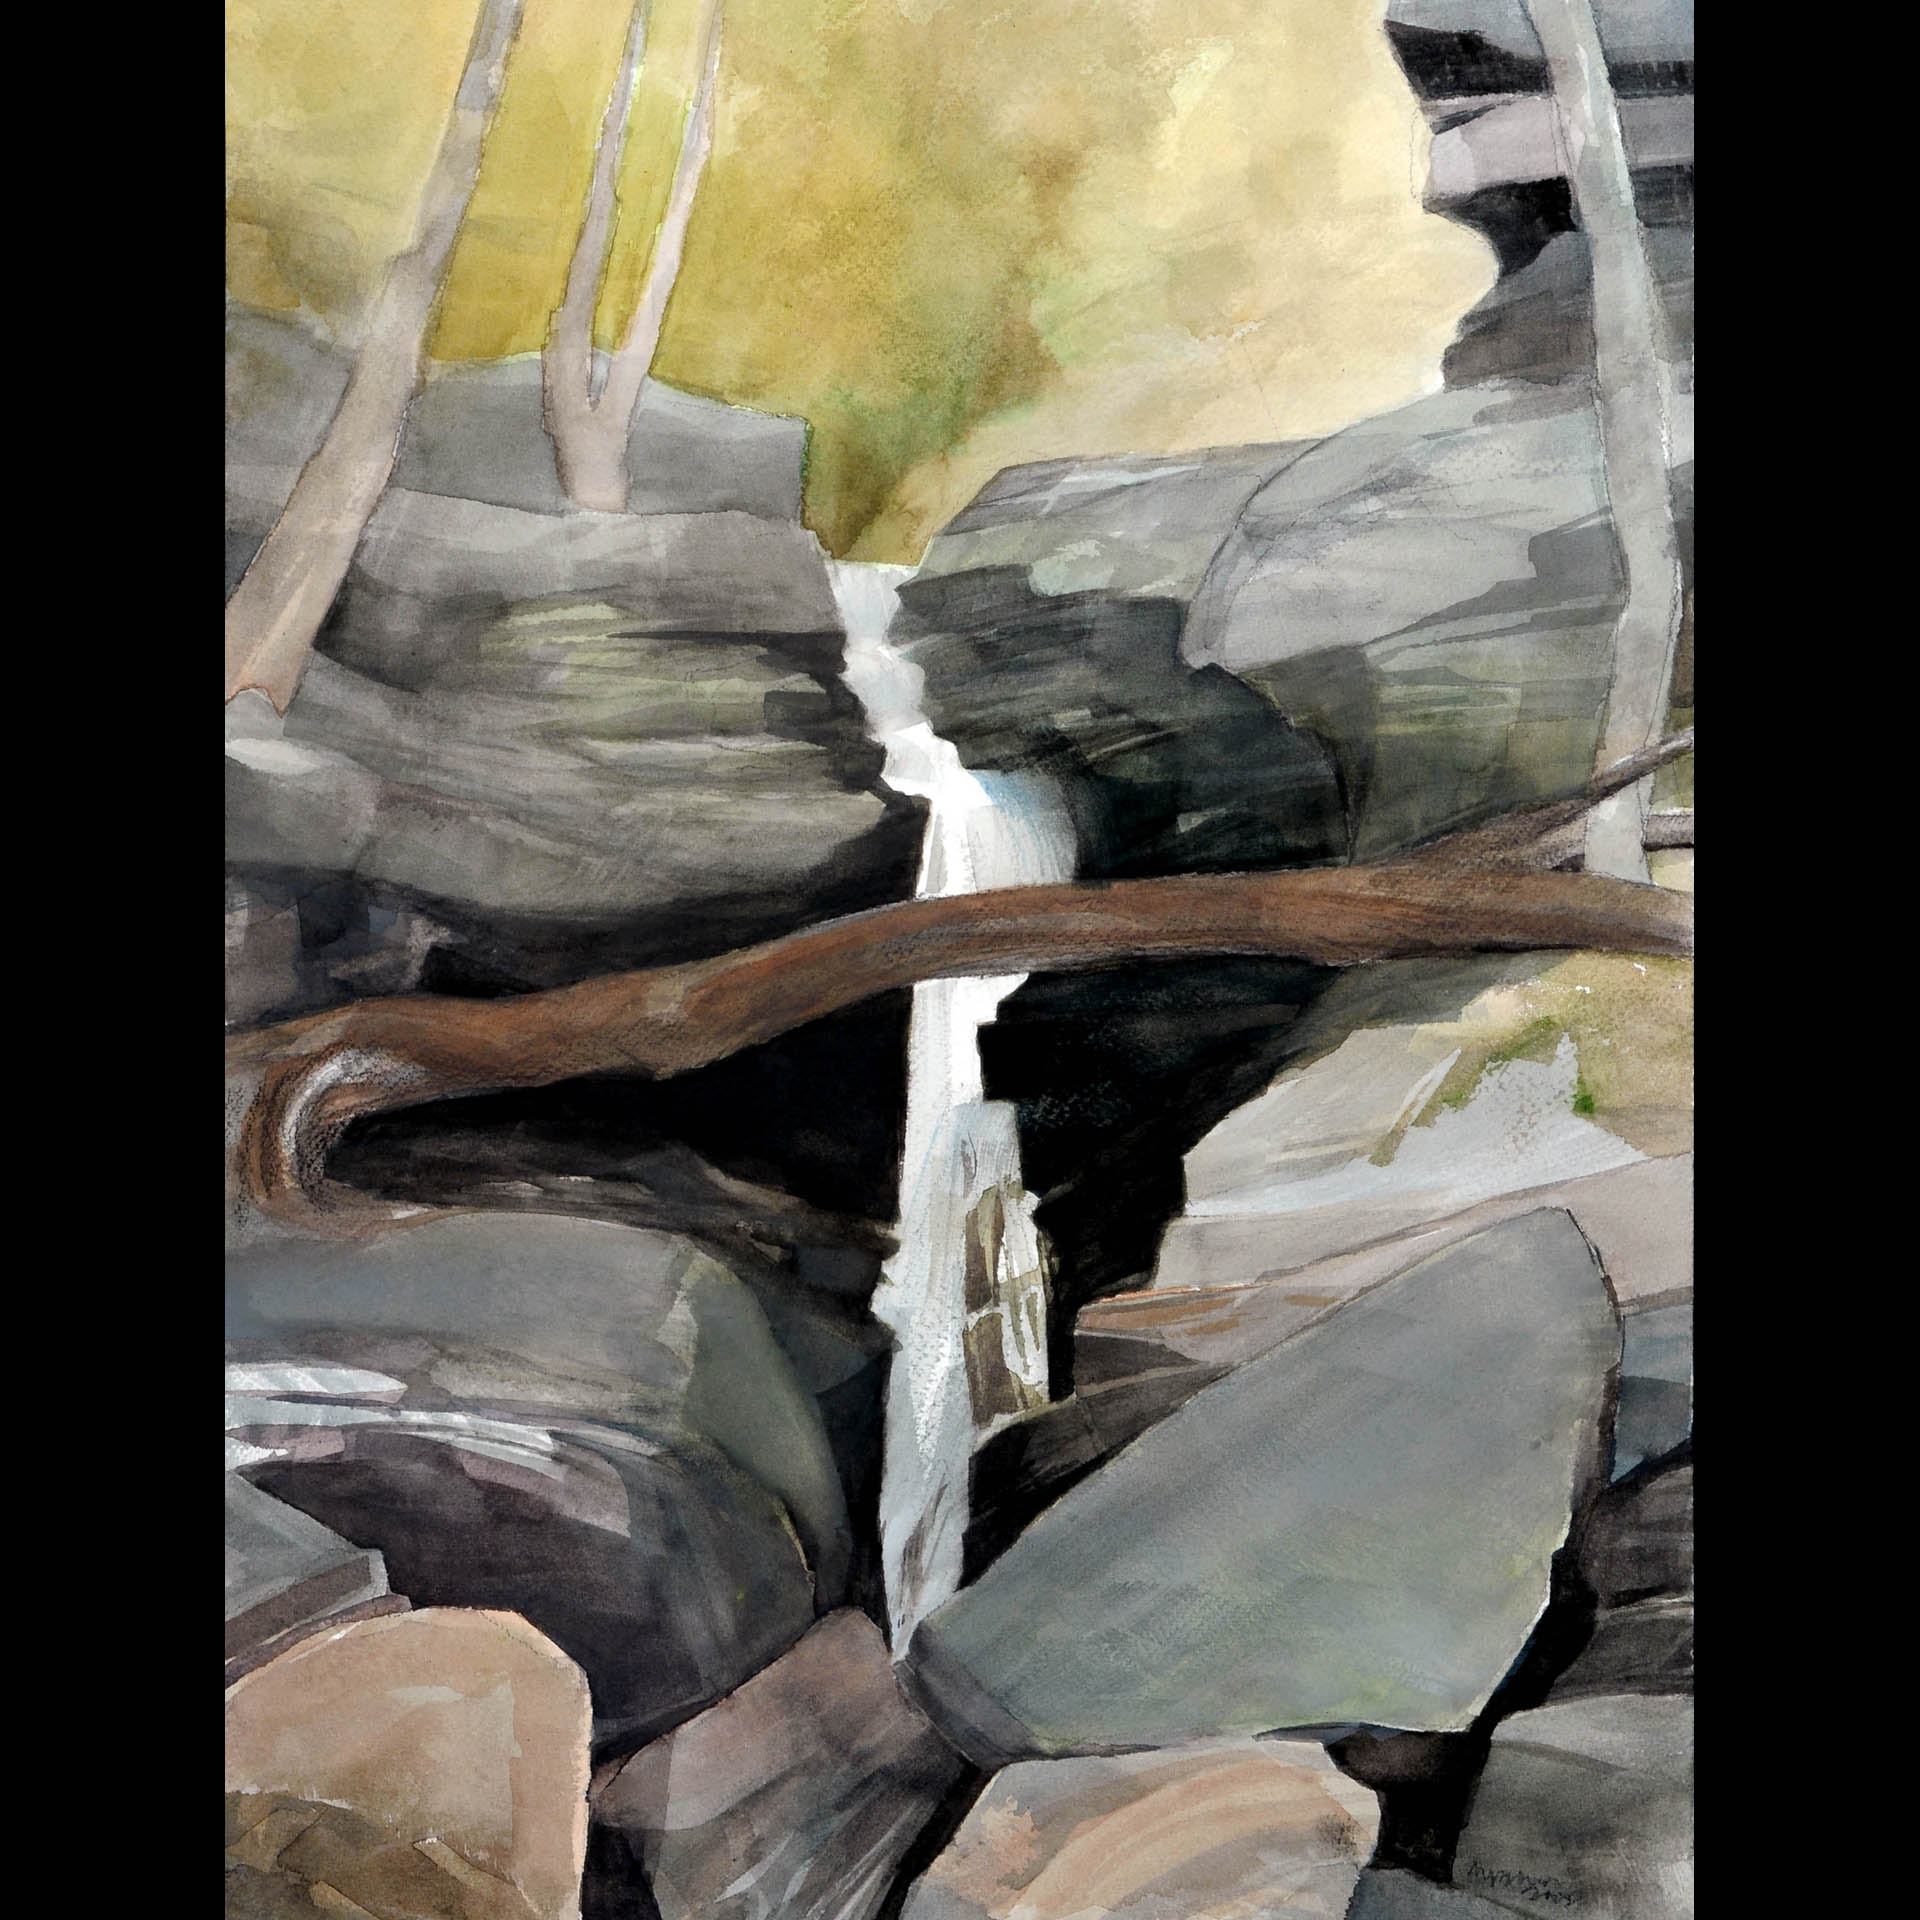 """RAVINE WATERFALL with LOG JAMMED INTO ROCKS watercolor 15 by 11.75"""" Mariella Bisson"""